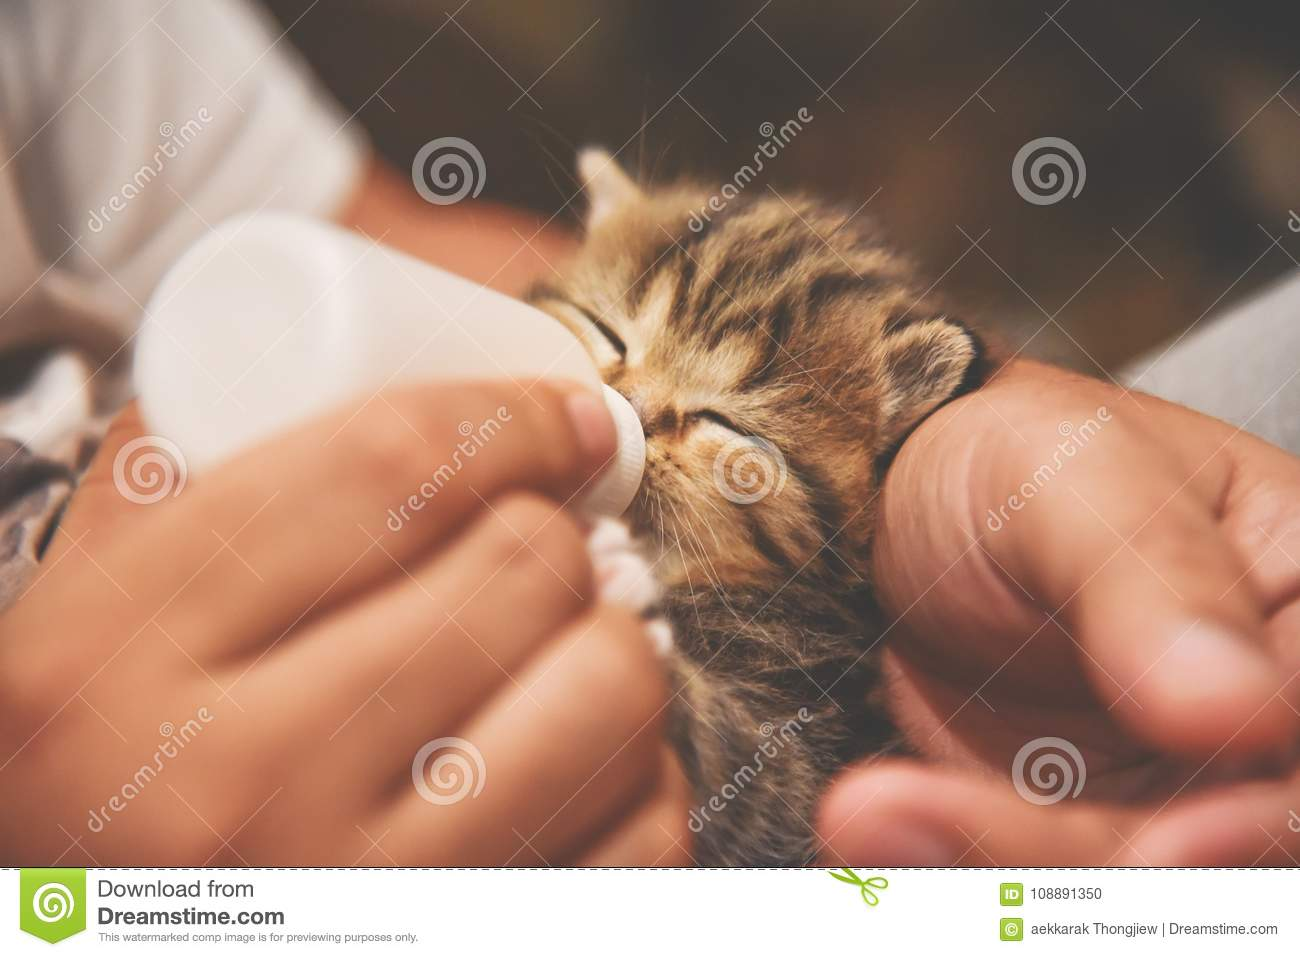 Man hands feeding milk from the bottle to small kitten.